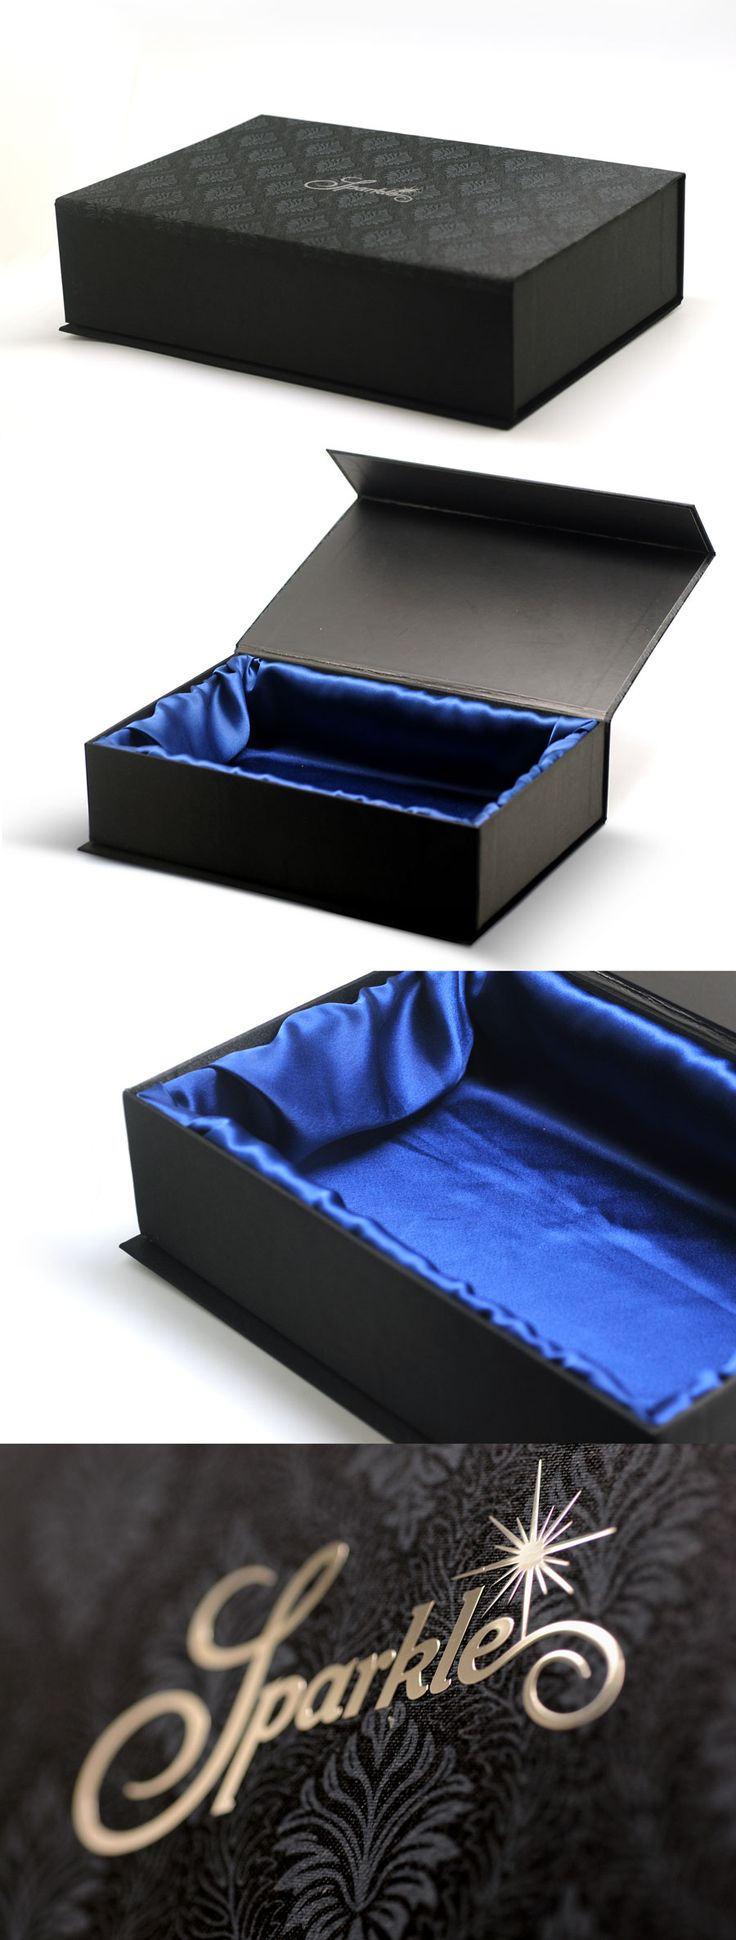 Luxury Rigid Box with Cloth Material                                                                                                                                                     More